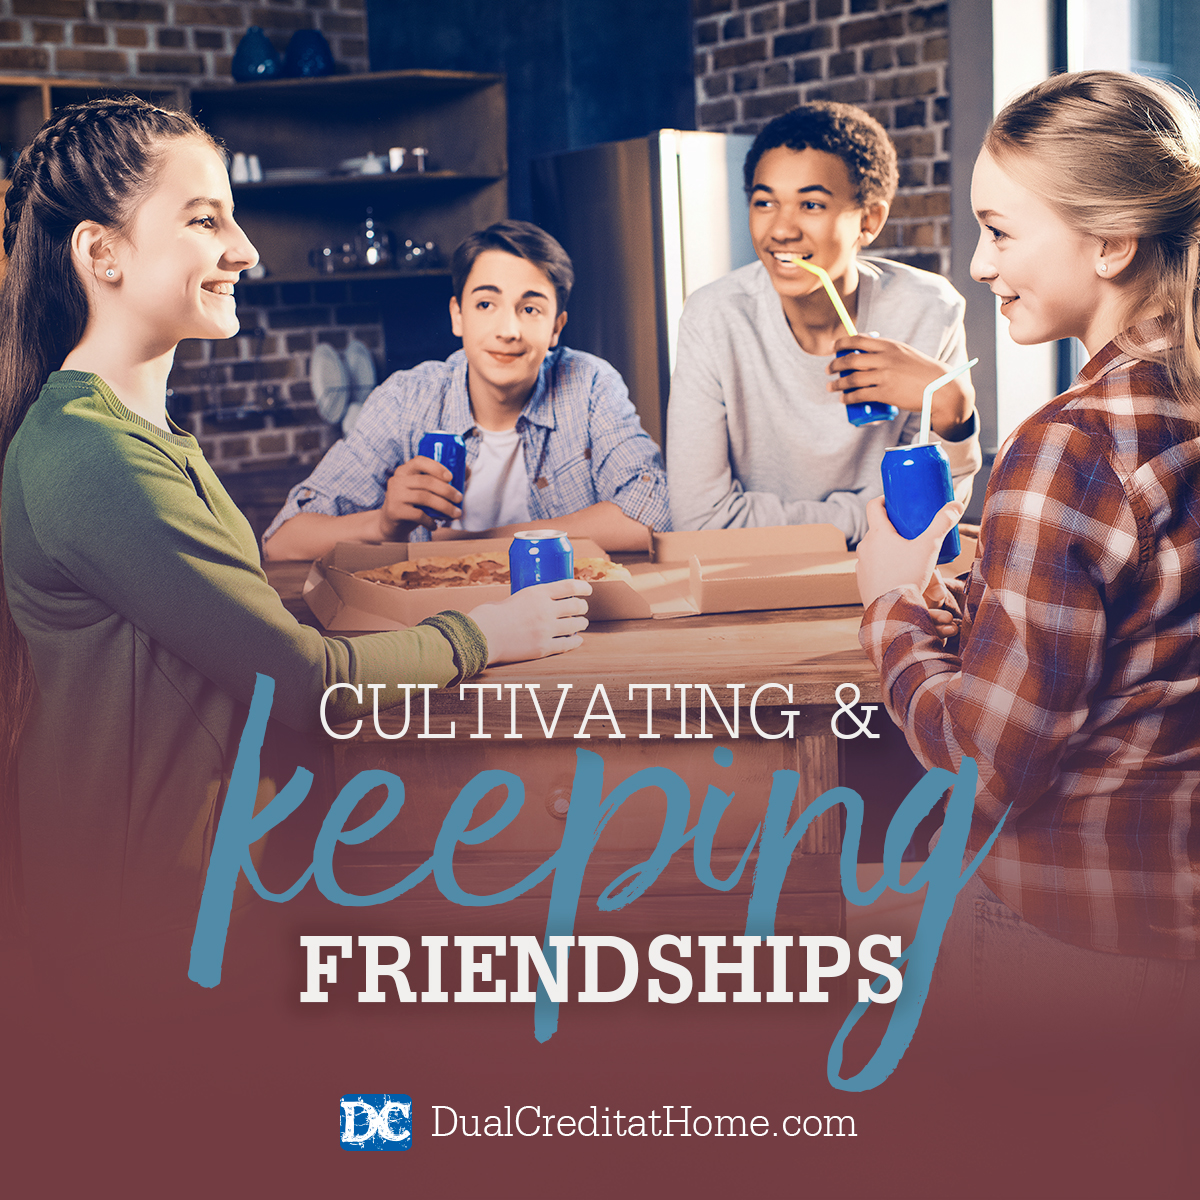 Cultivating and Keeping Friendships